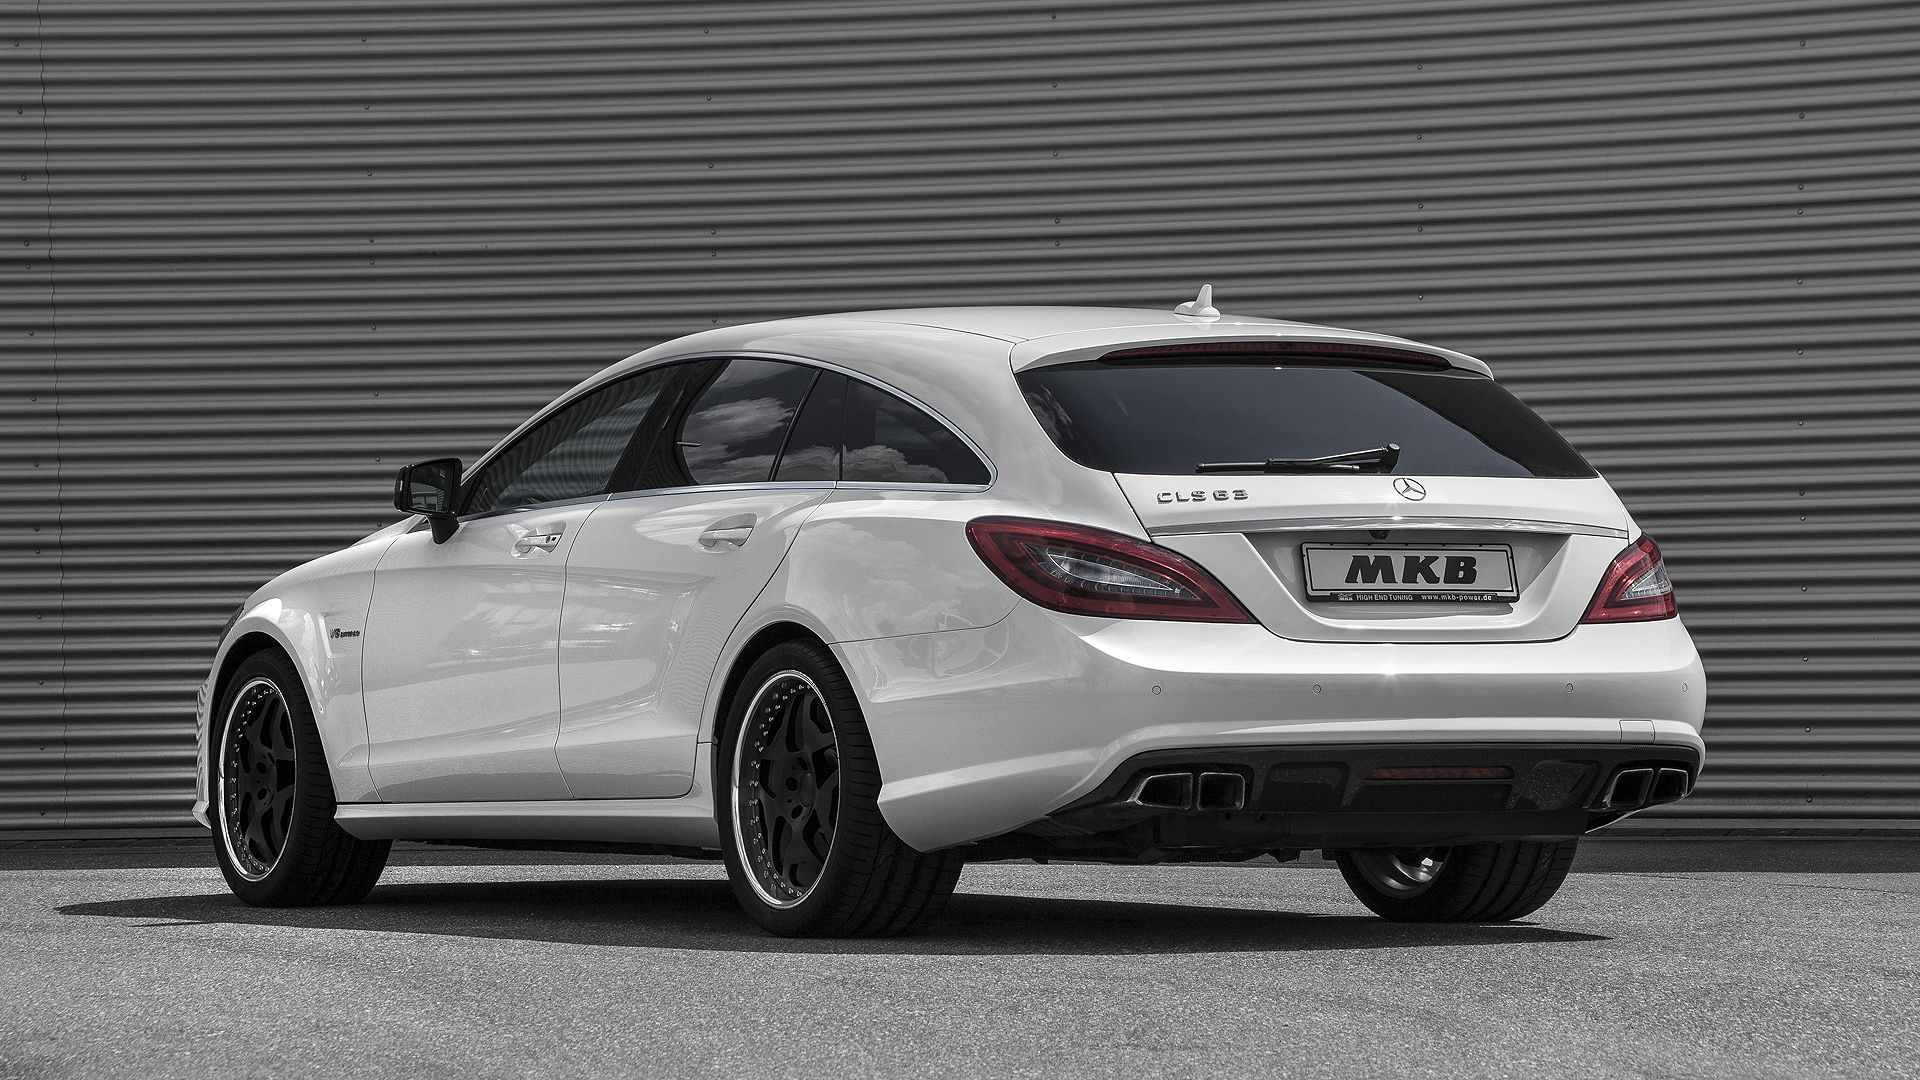 MKB - The technology company for development & design on Mercedes